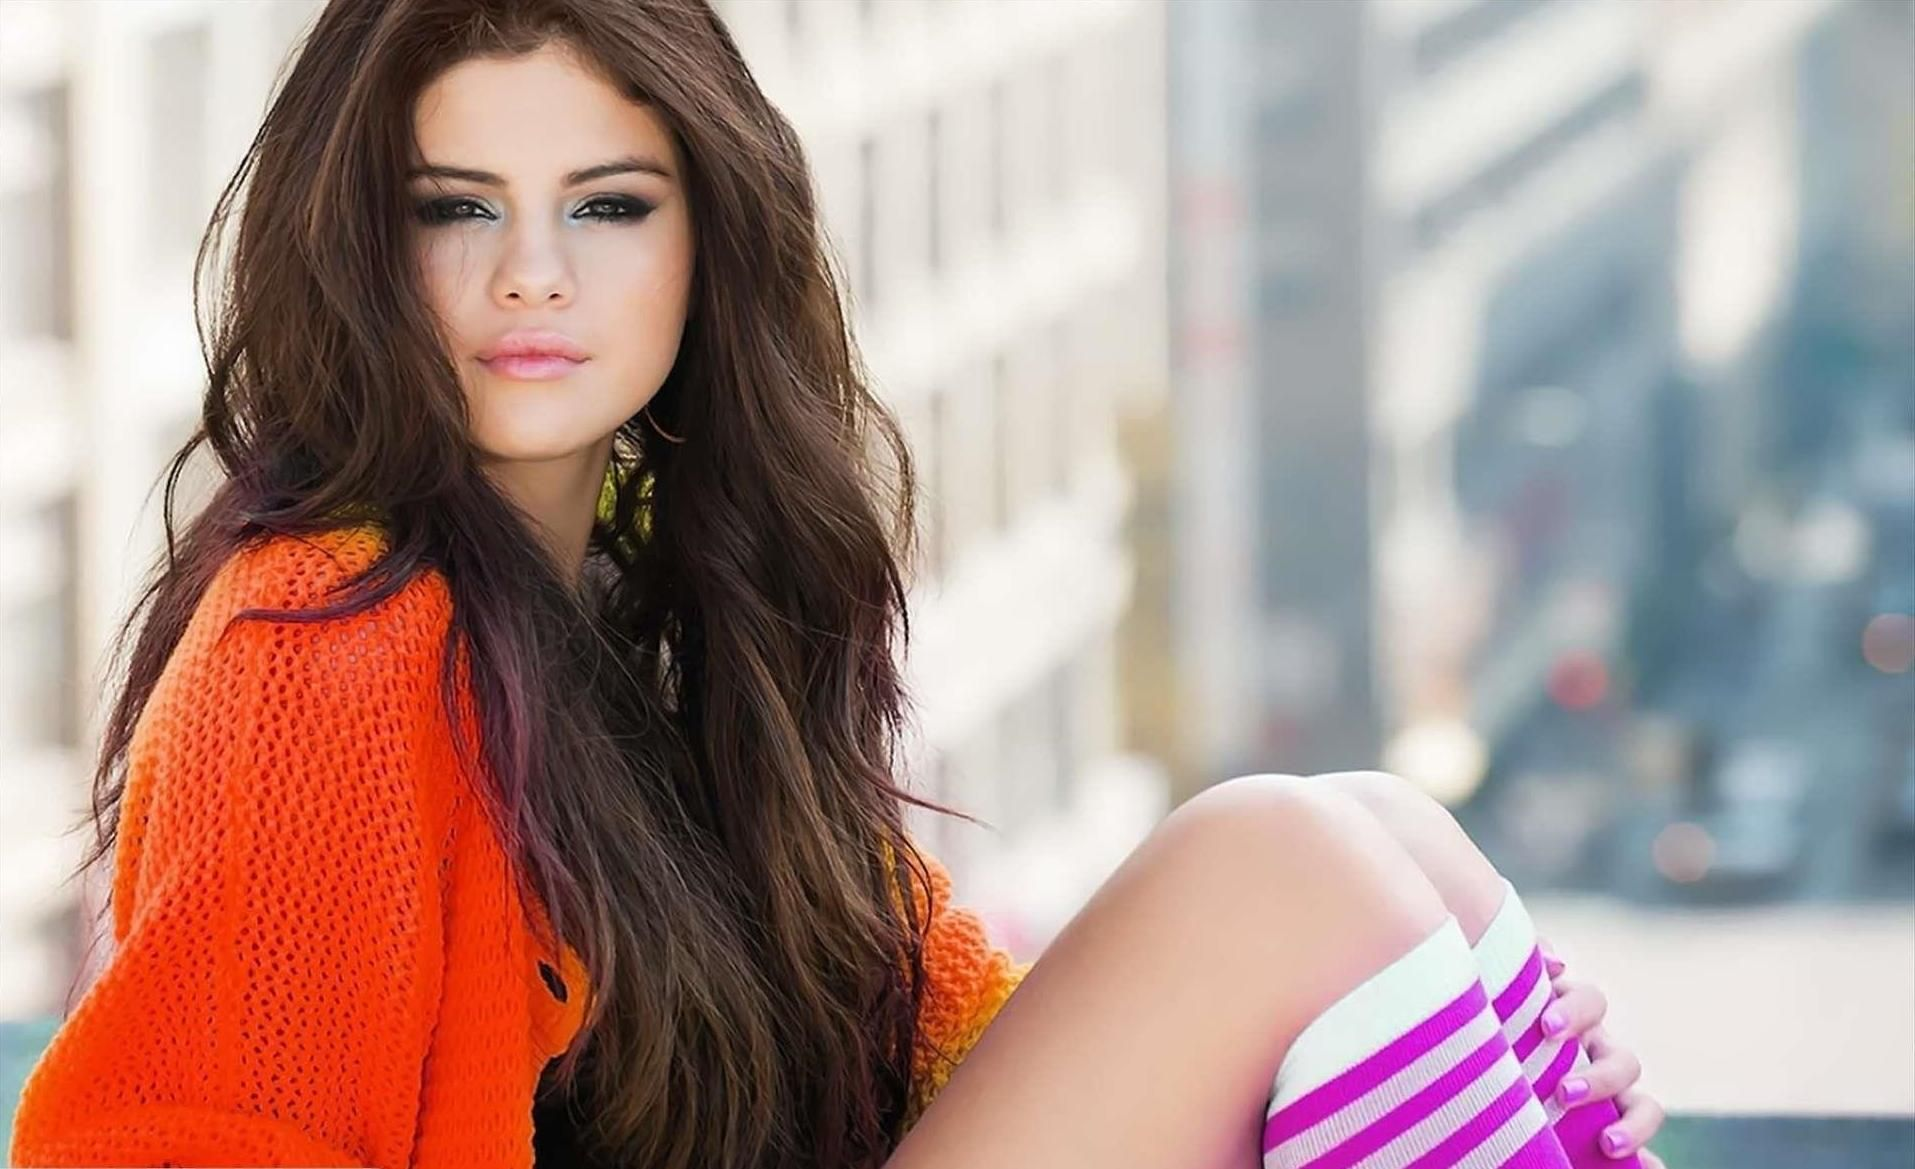 free hd quality wallpapers of dazzling selena gomez 1800 1200 selena